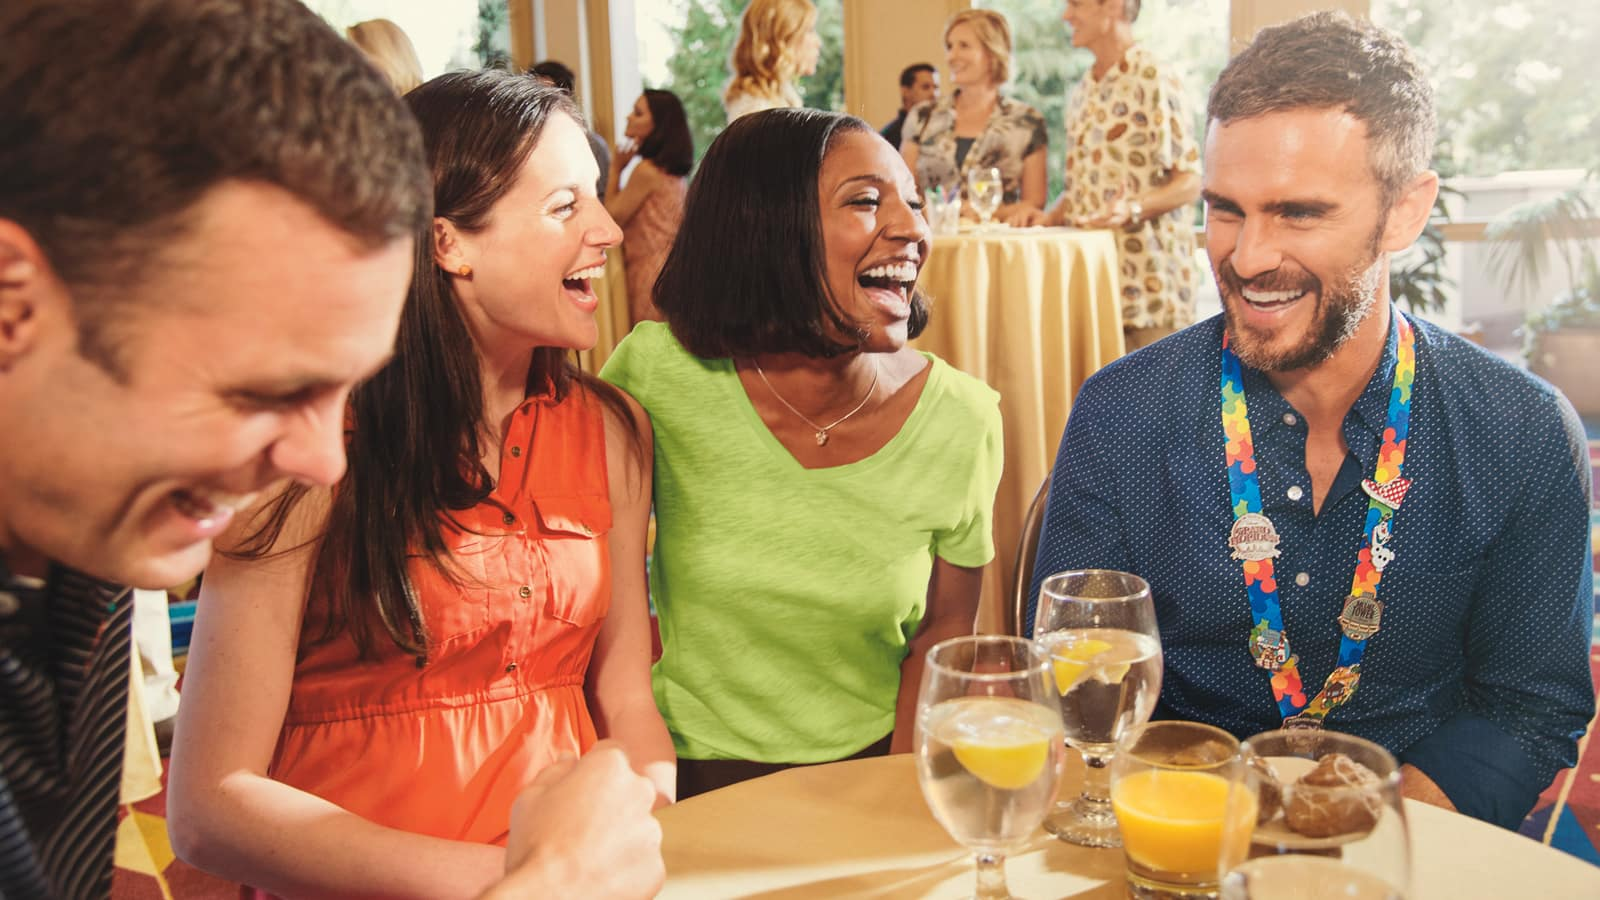 2 men and 2 women laugh as they gather around a table with 4 beverages